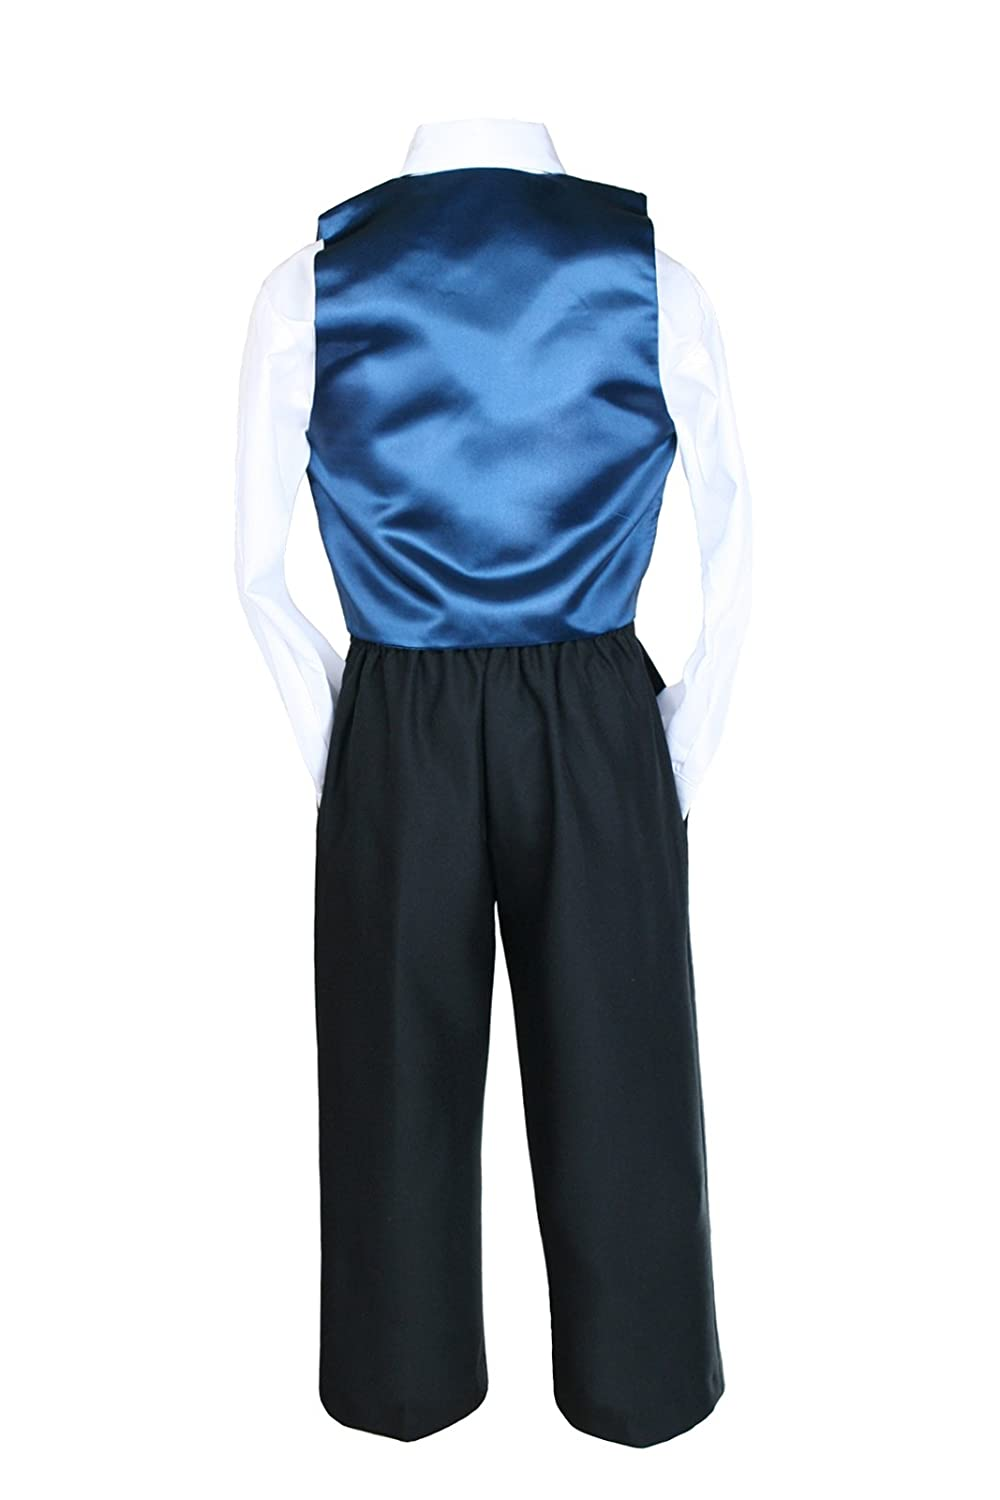 Unotux Boy Satin Shawl Lapel Suits Tuxedo with Green Teal Bow Tie Vest Sets S-20